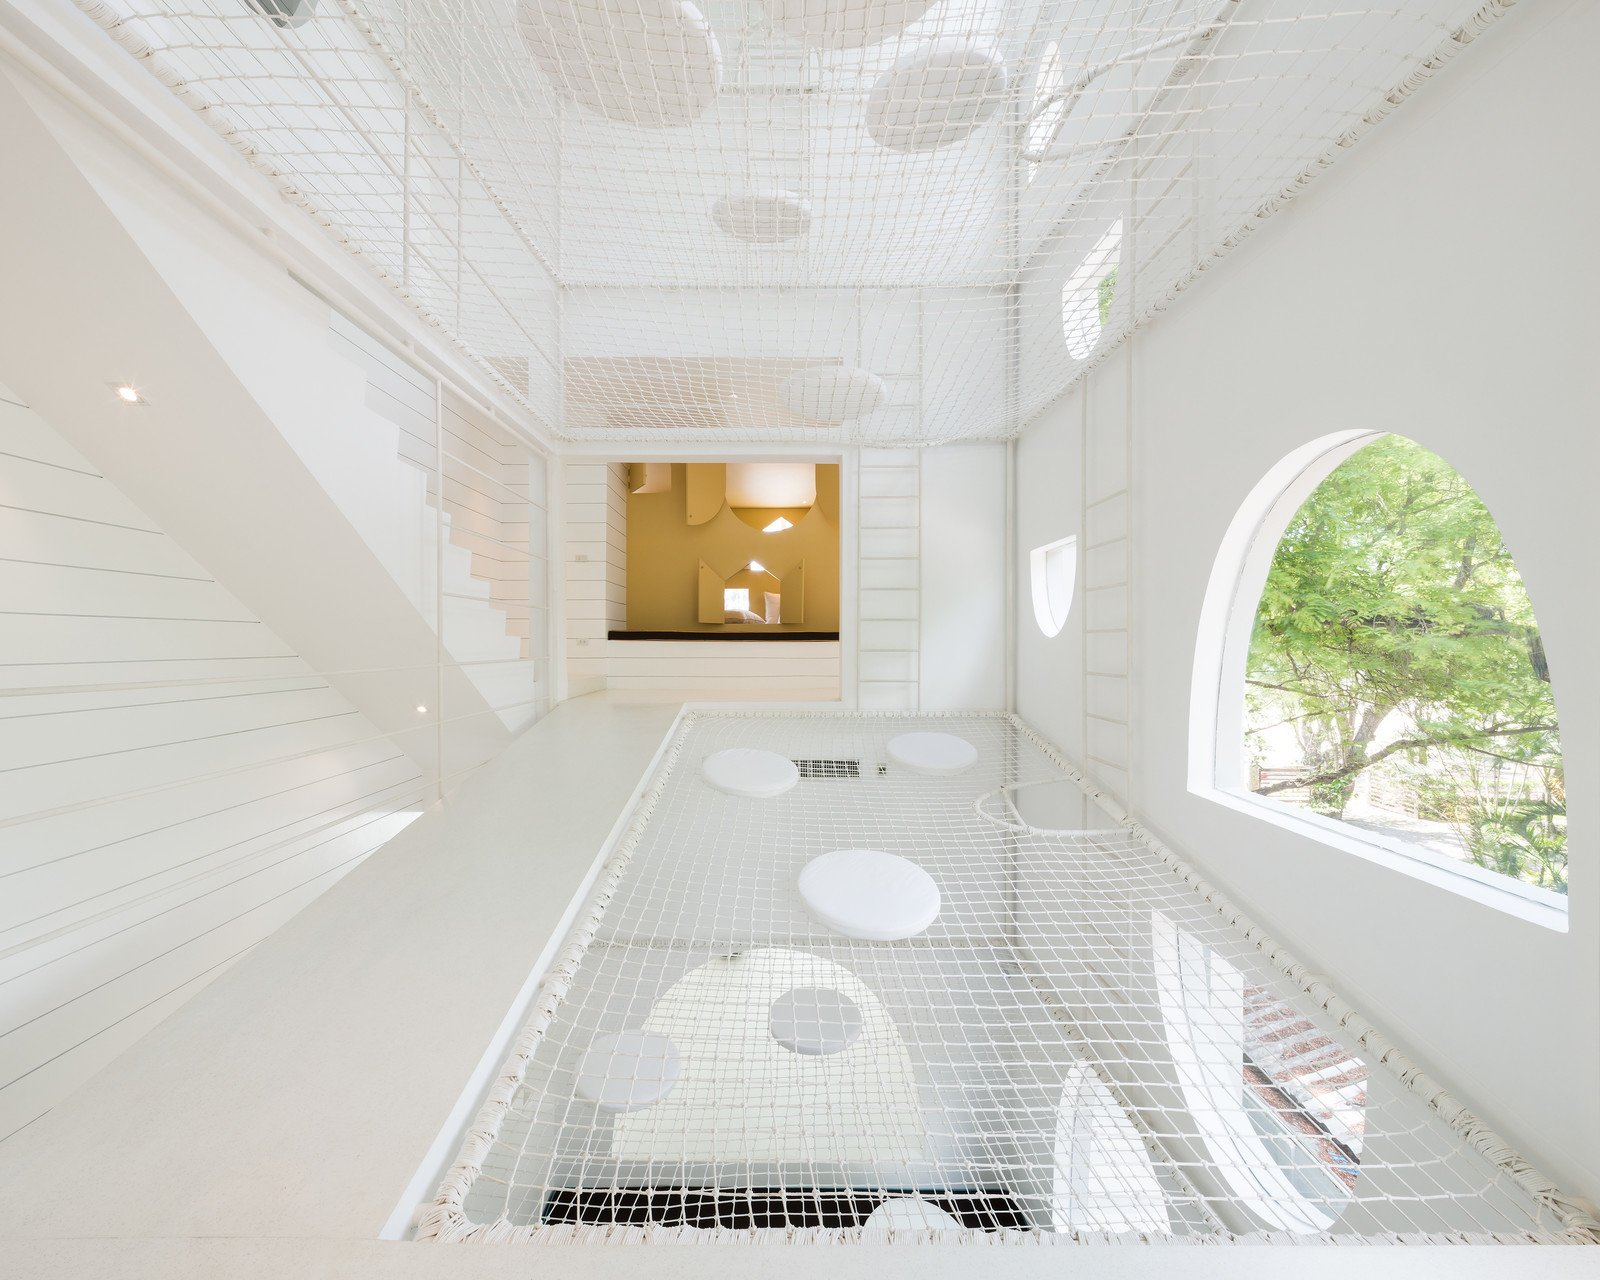 Photo 1 of 11 in Inspired by Tom and Jerry, This Net-Filled Vacation Home Is a Kid's Paradise